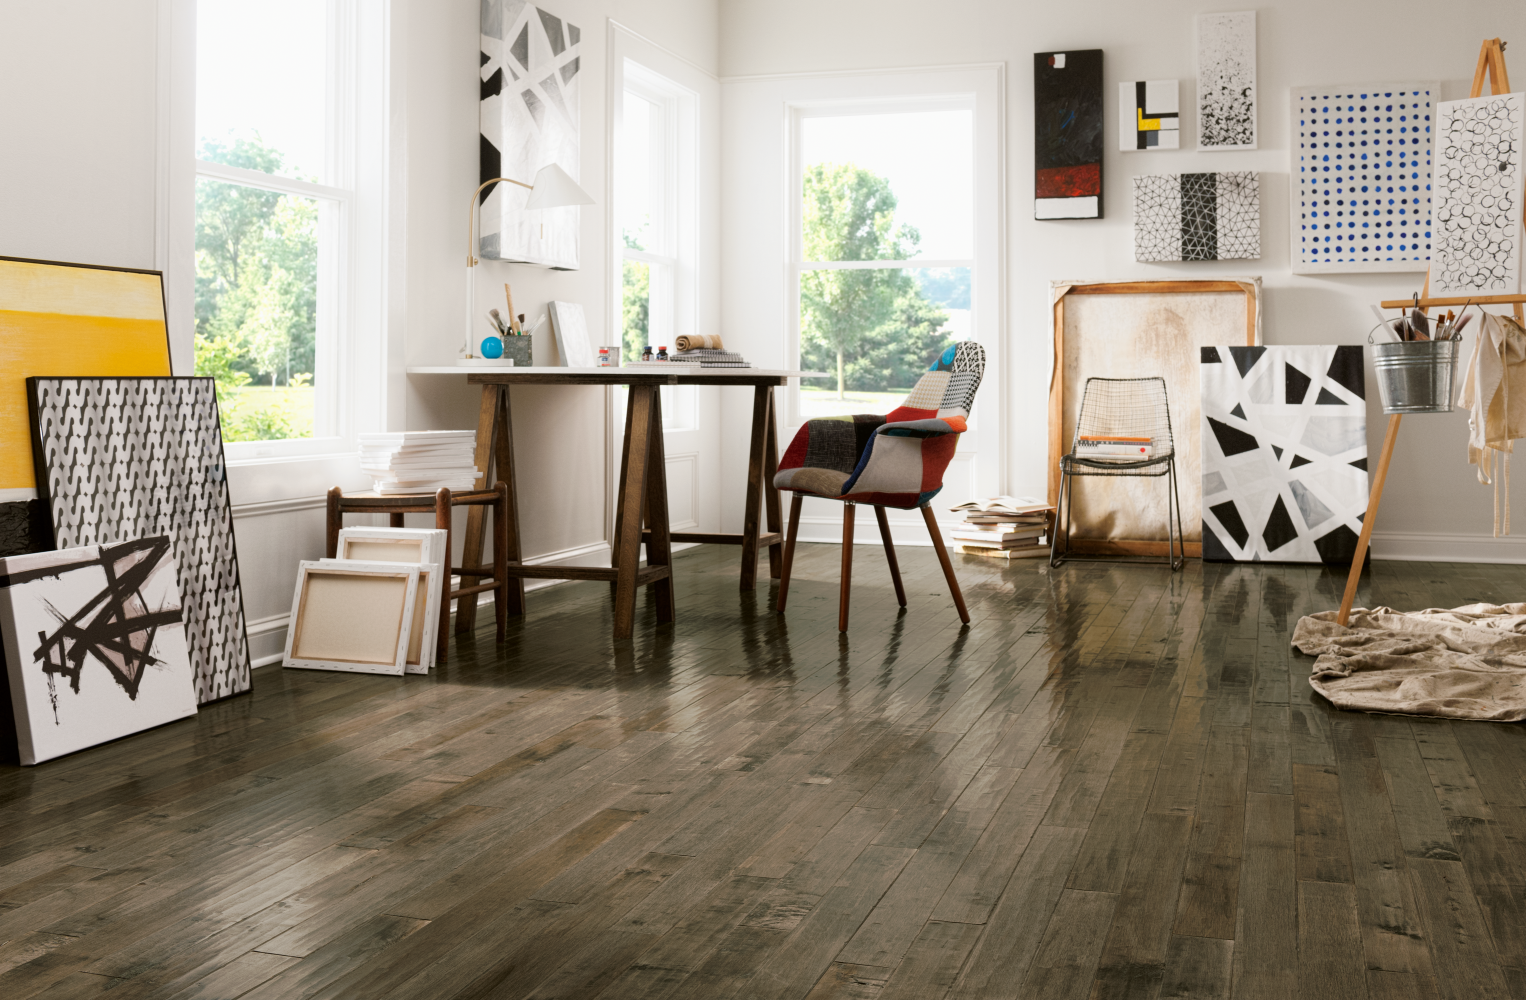 Armstrong American Scrape Hardwood Nantucket 5 in Nantucket SAS519